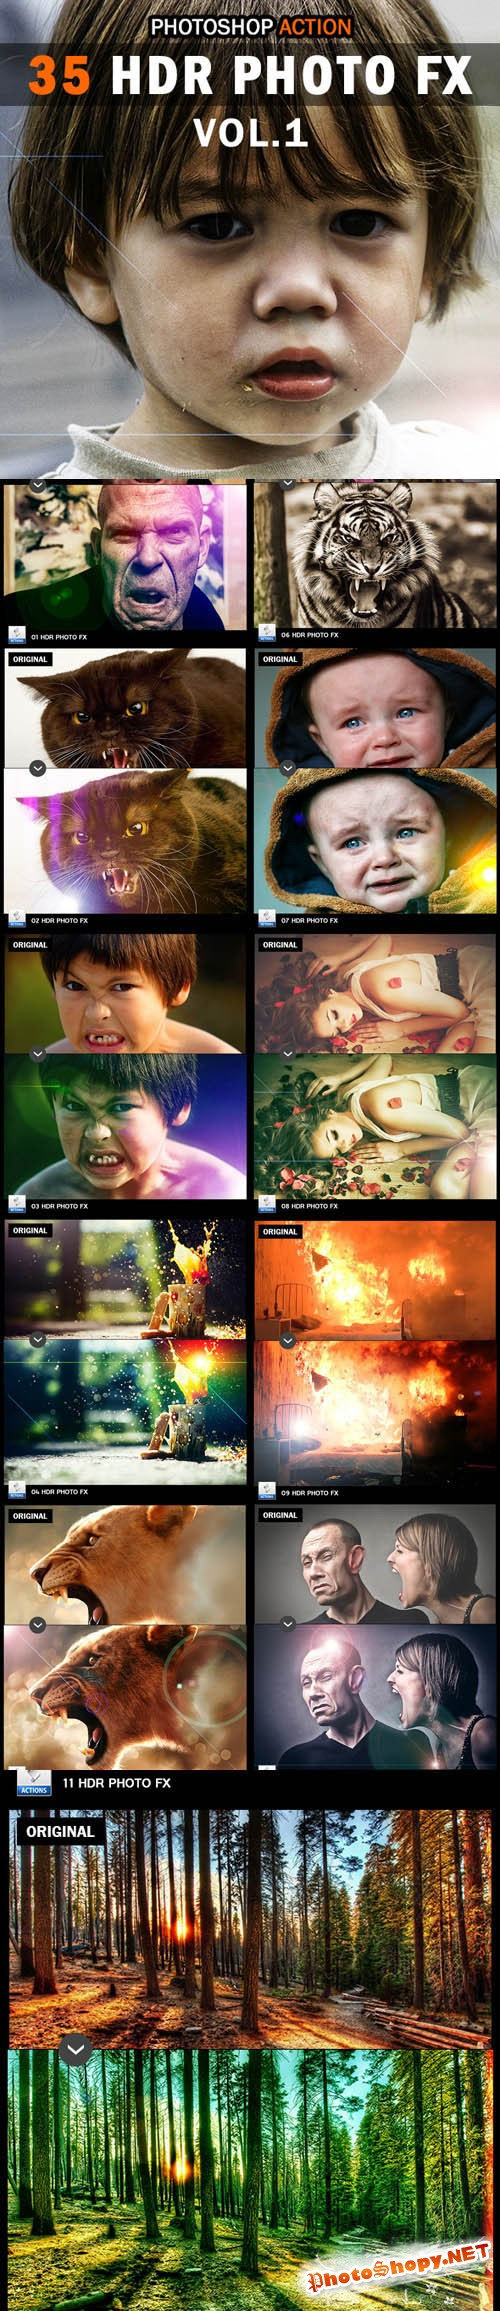 35 HDR Photo FX V.1 - Photoshop Action - Graphicriver 10200067